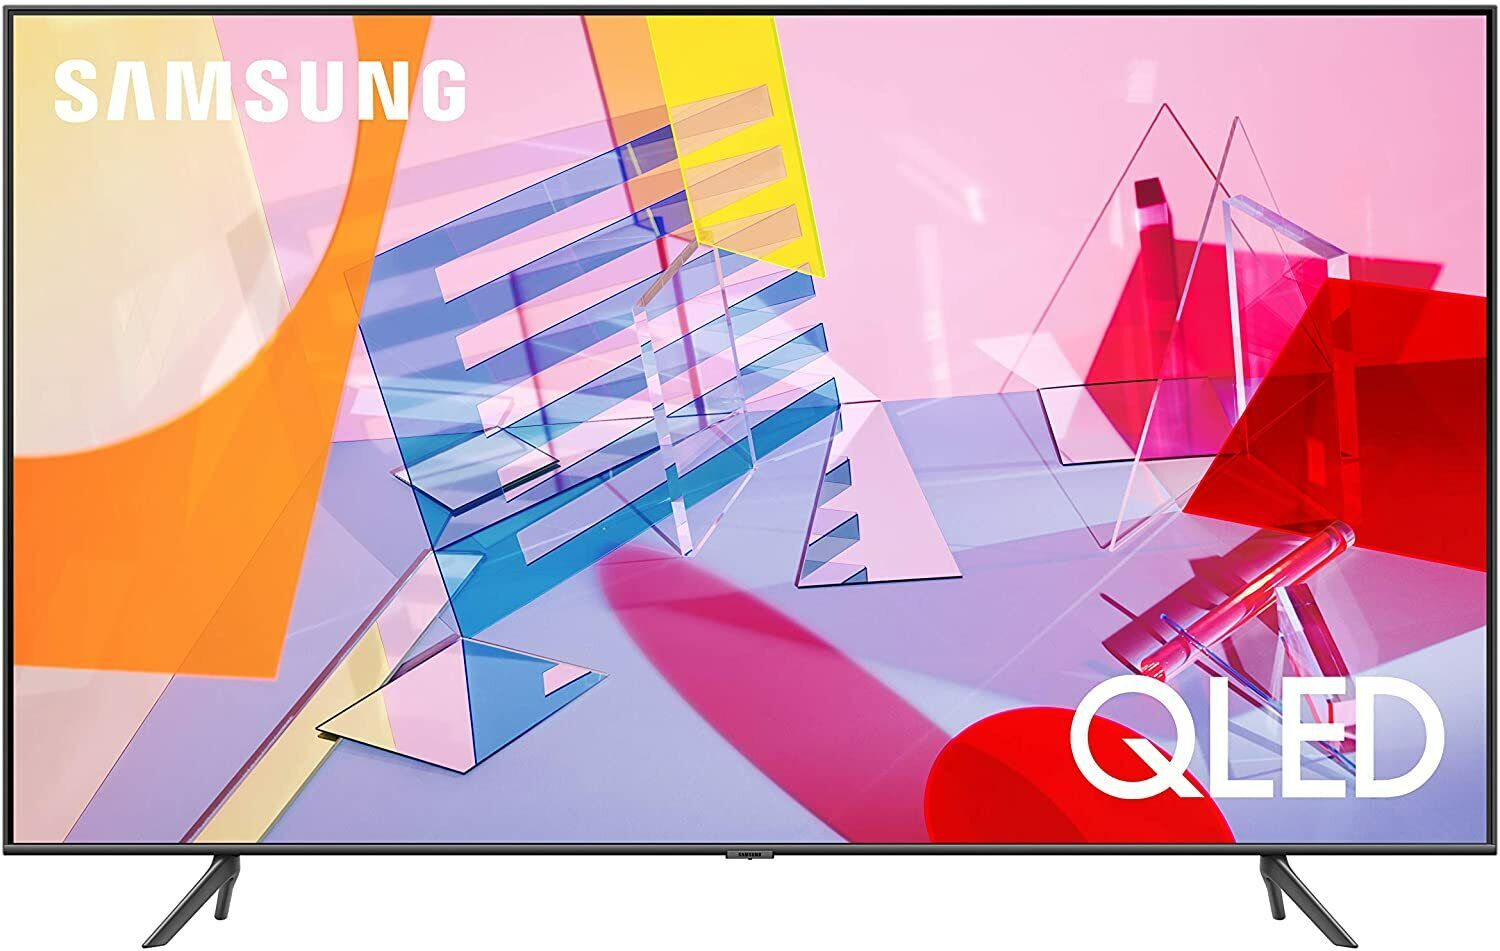 SAMSUNG 65-inch Class QLED Q60T Series - 4K UHD Dual LED Quantum HDR Smart TV . Available Now for 770.00